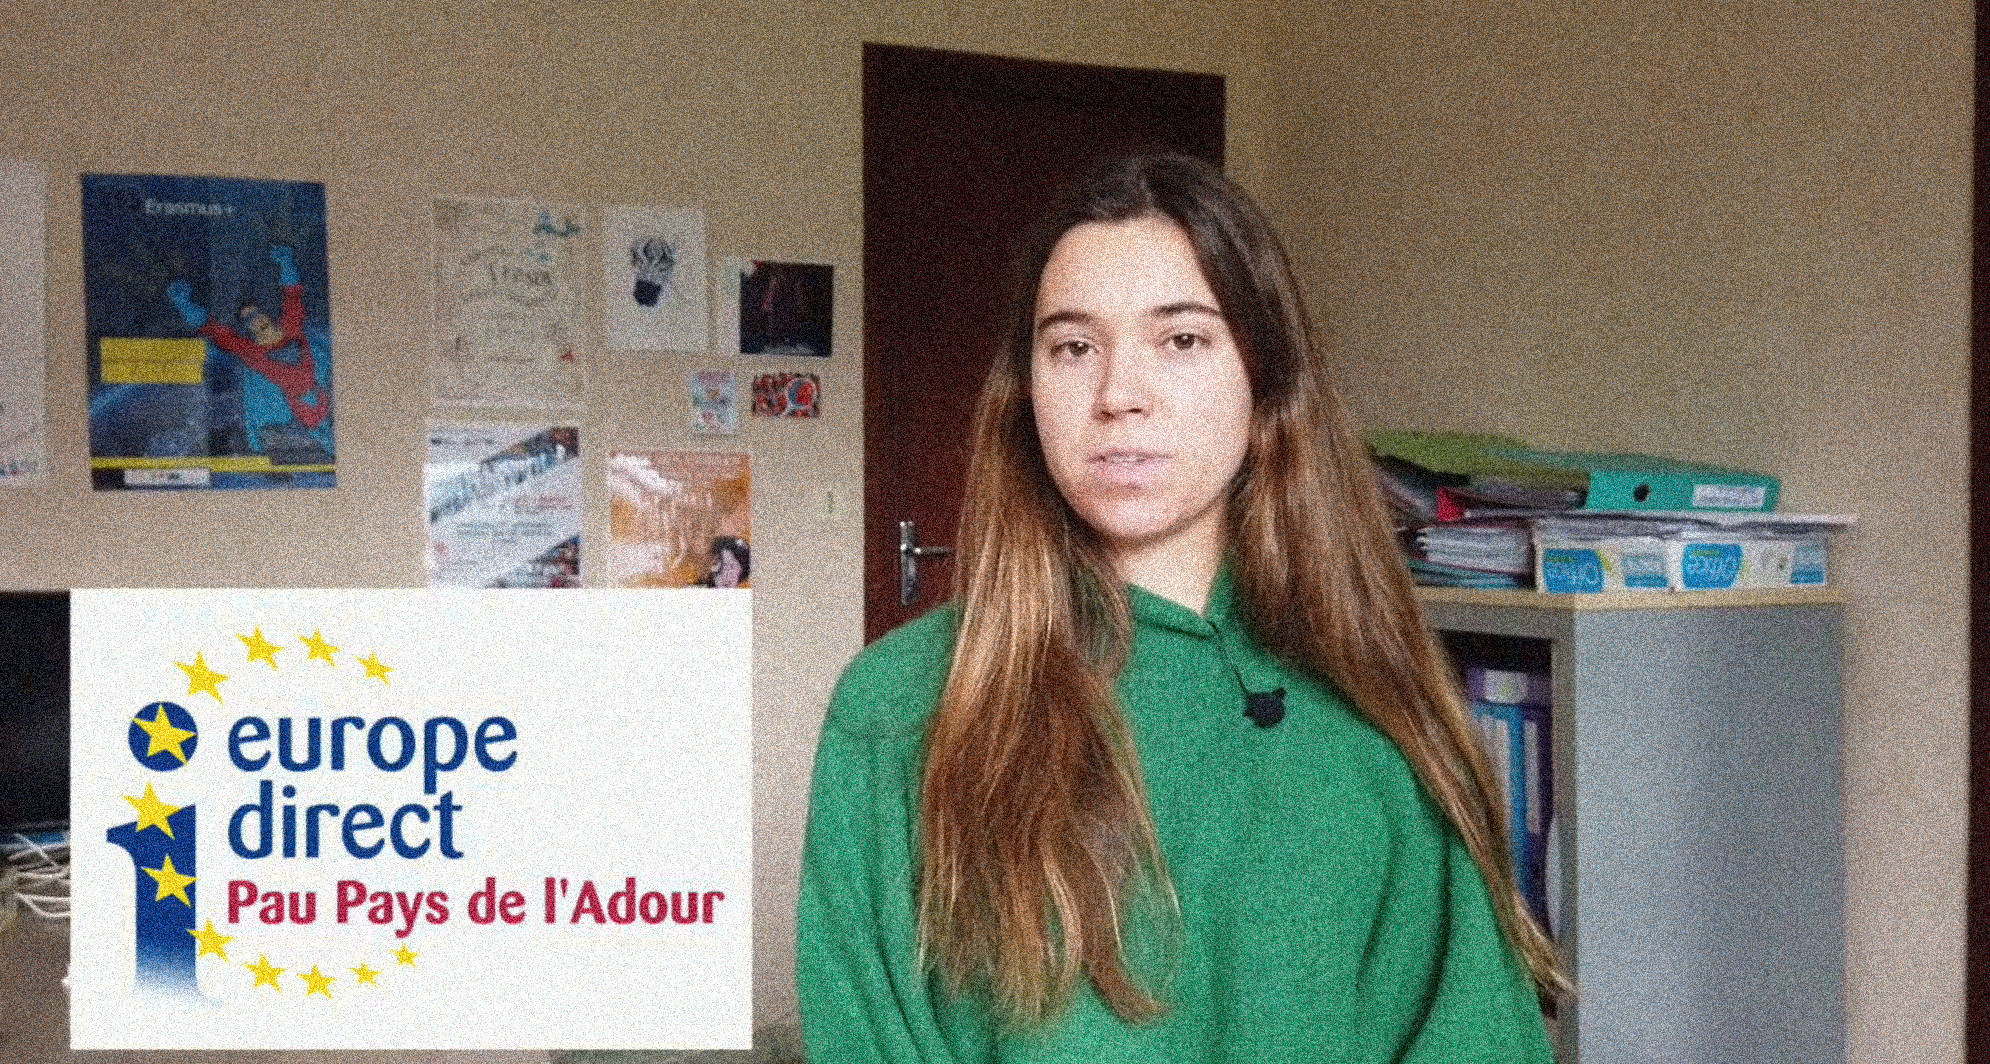 Carlota - Pistes Solidaires and Europe Direct